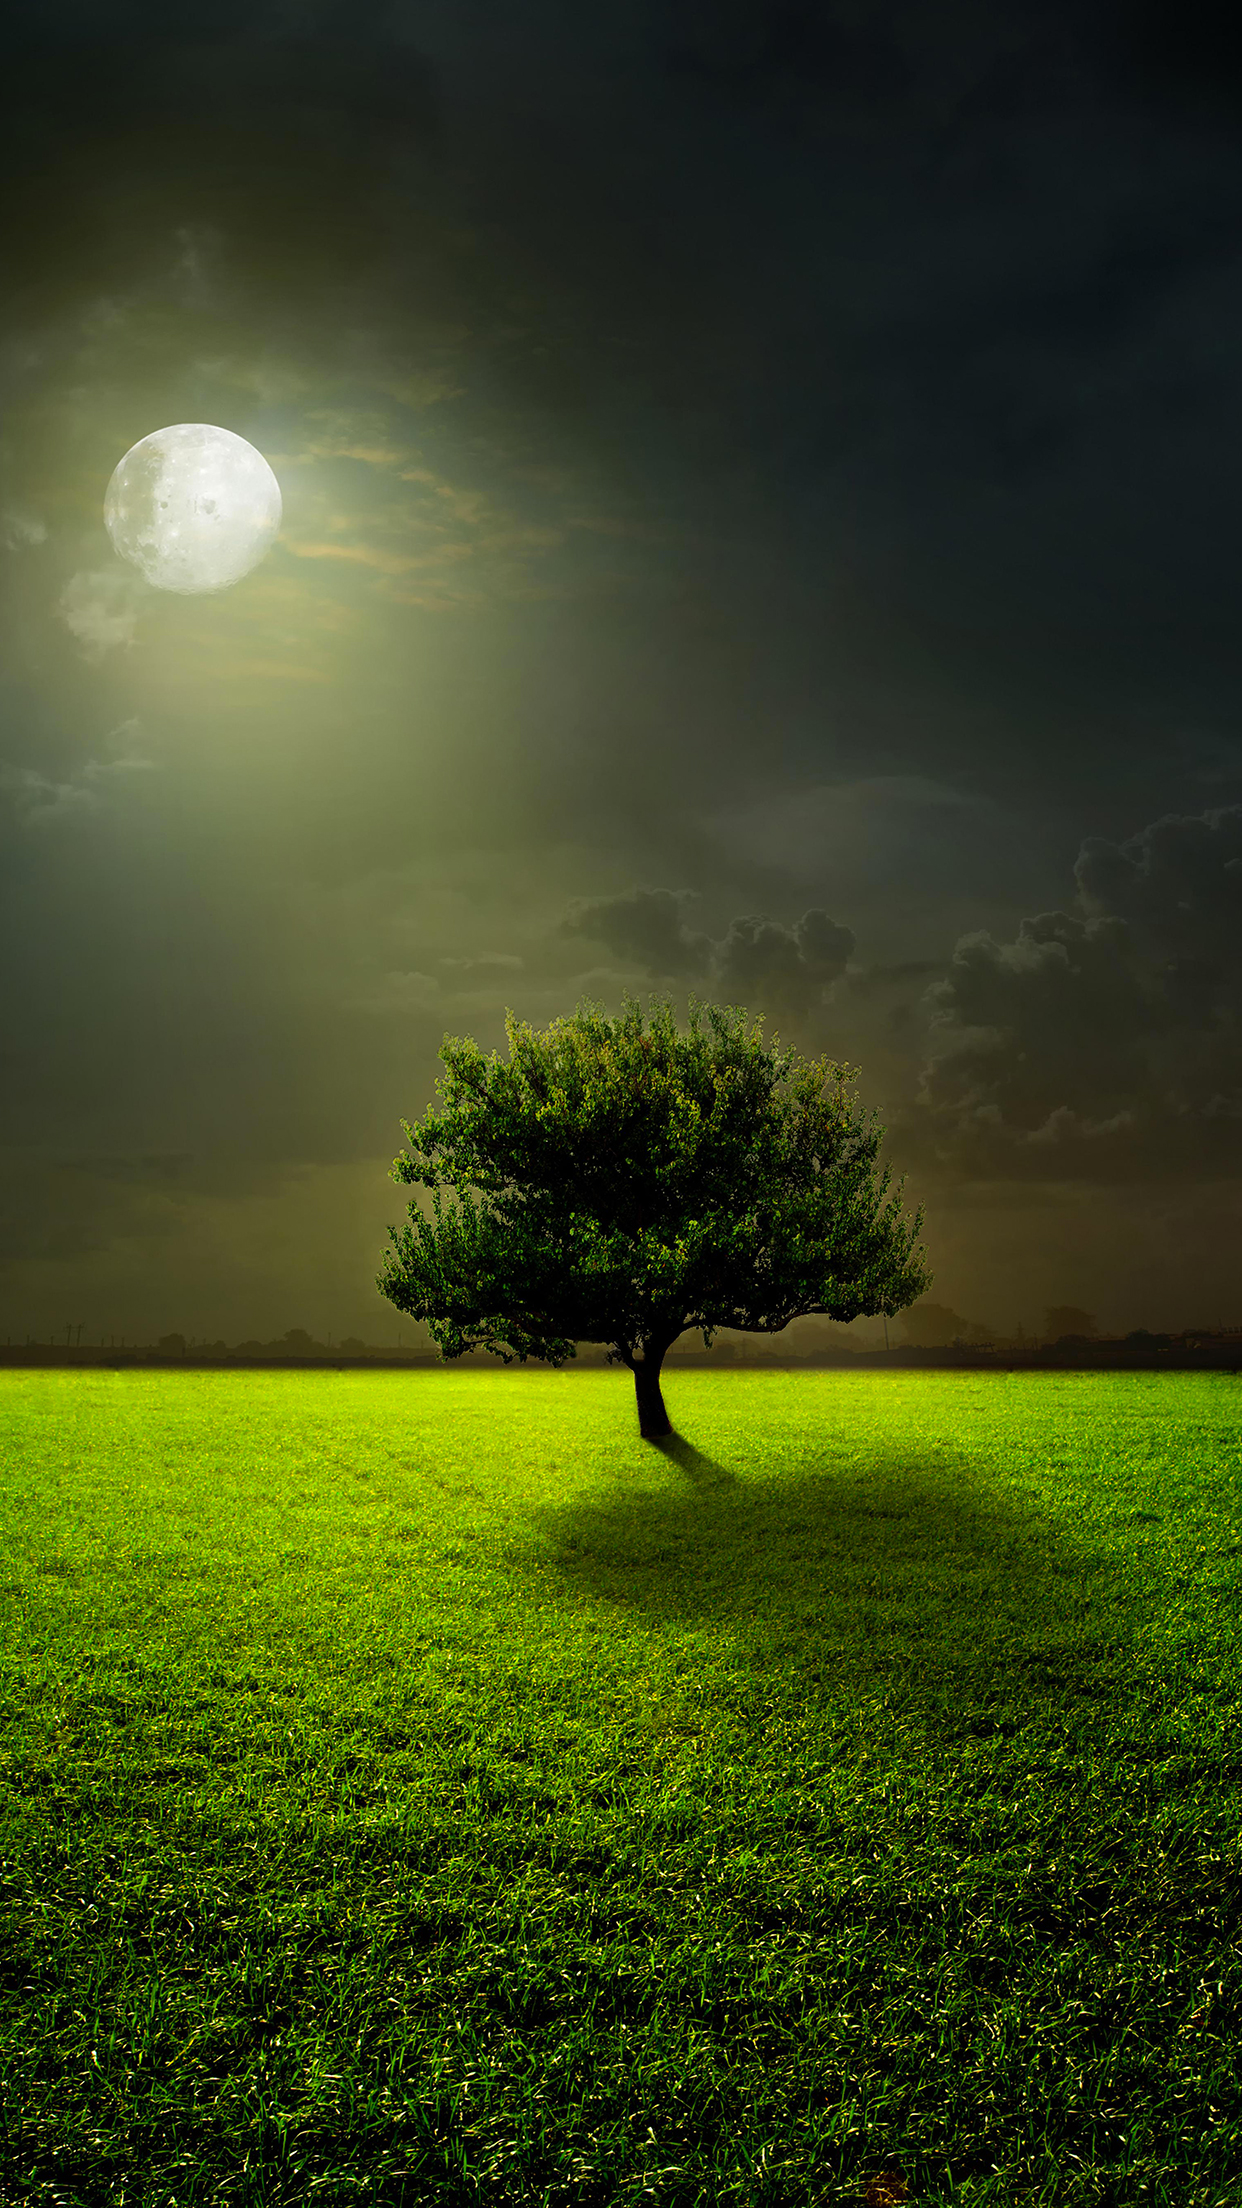 Moon lighting tree wallpaper for iphone x 8 7 6 free - Nature wallpaper note 8 ...